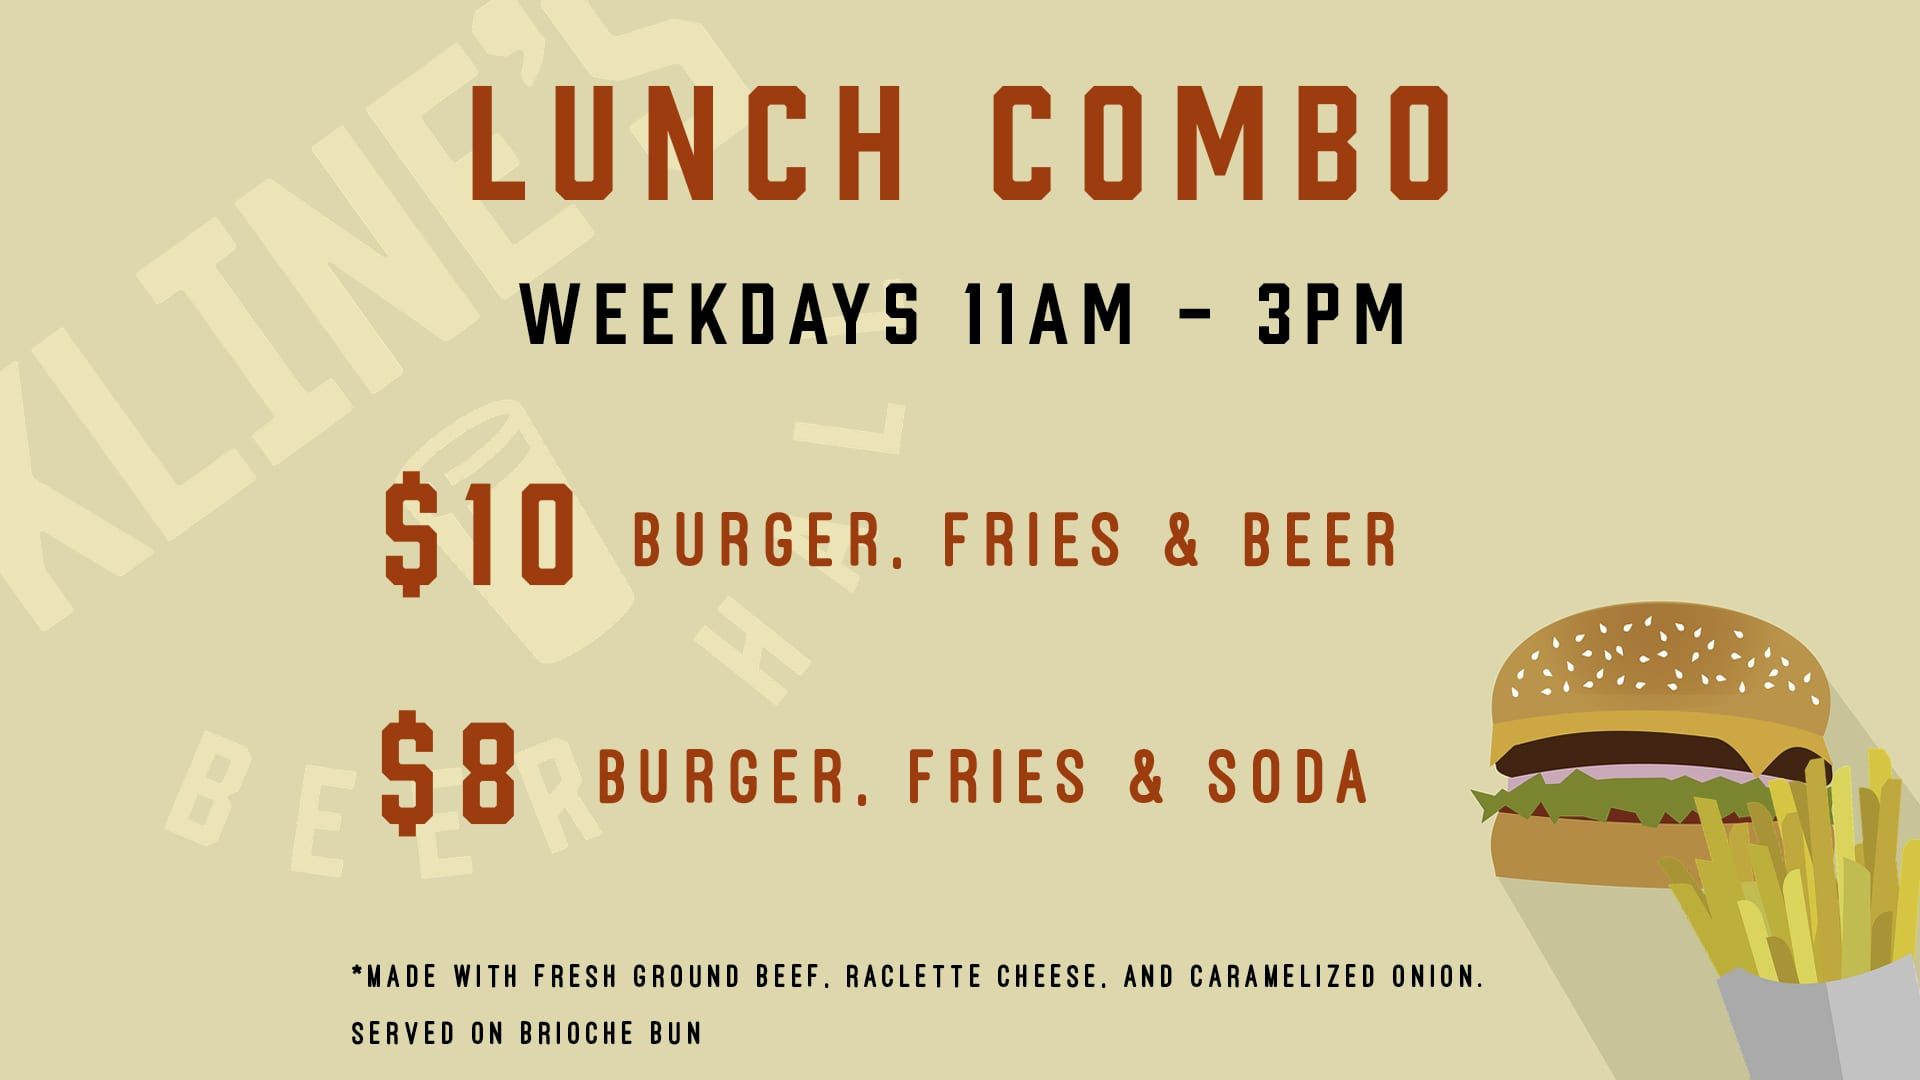 Kline's $10 and $8 Lunch Combo